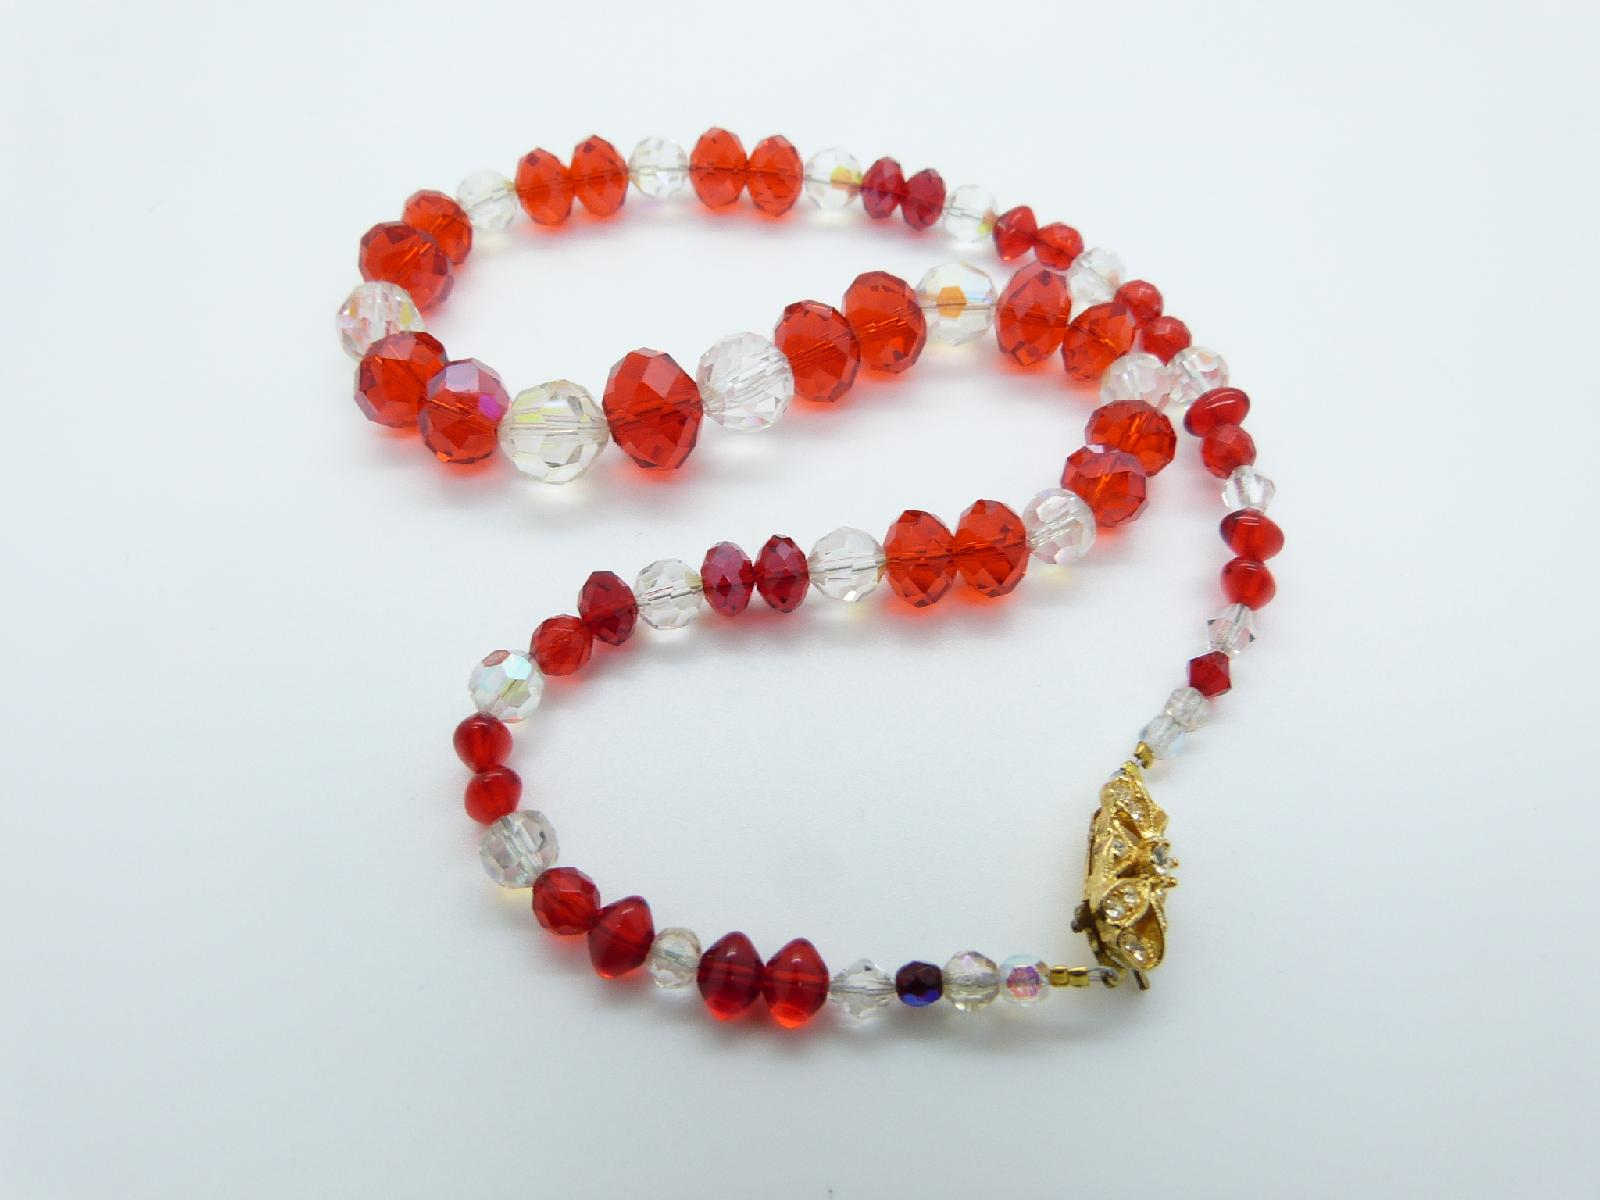 £13.00 - Vintage Redesigned 1950s Red and Clear Crystal Glass Bead Necklace Fancy Clasp 47cms